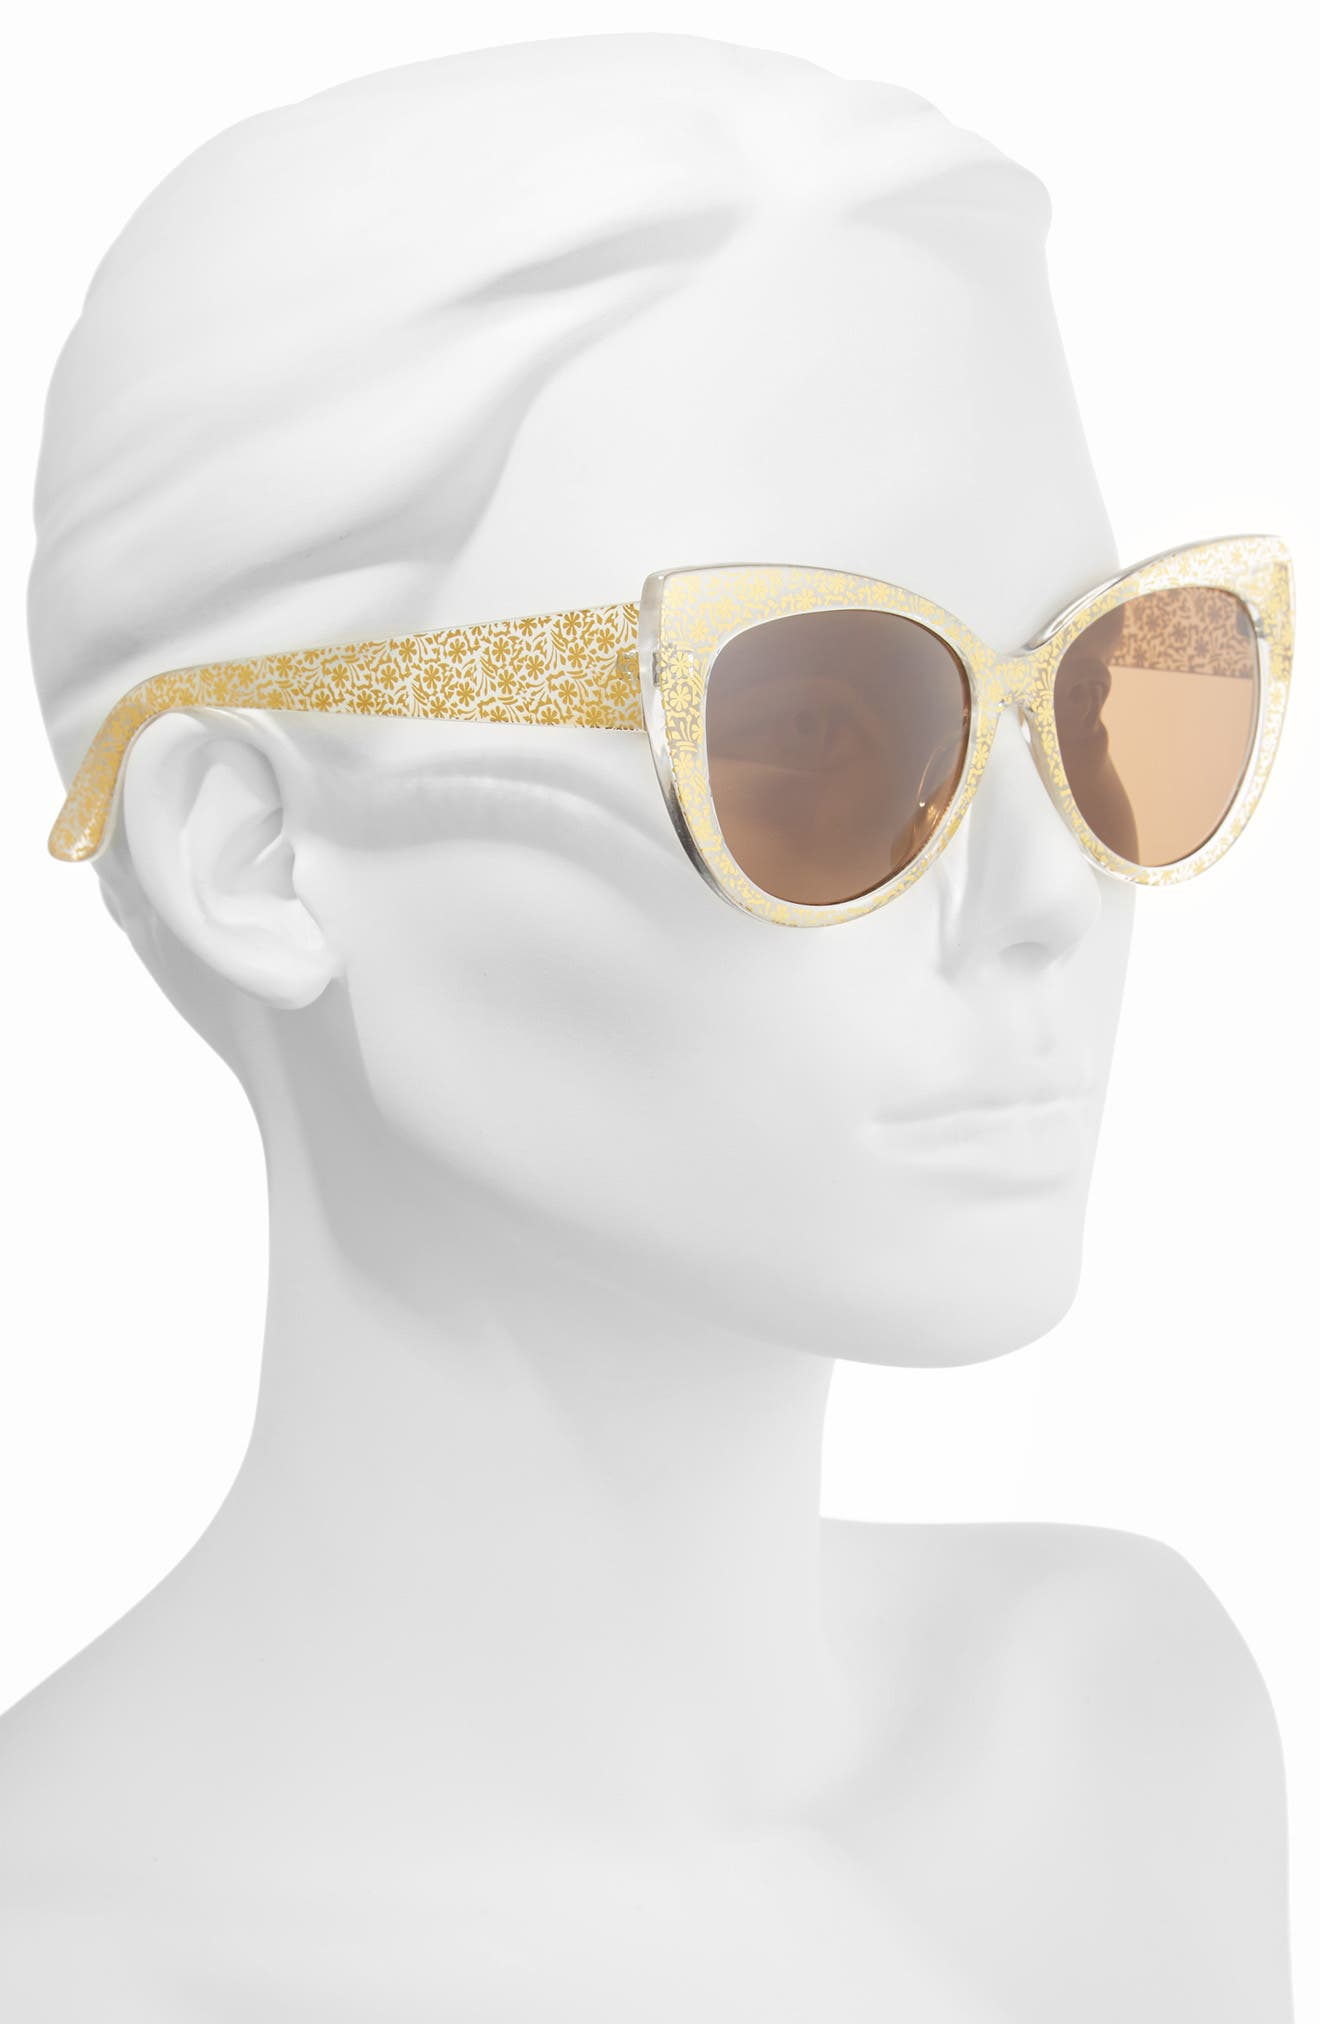 55mm Floral Cat Eye Sunglasses,                             Alternate thumbnail 2, color,                             Gold/ Gold